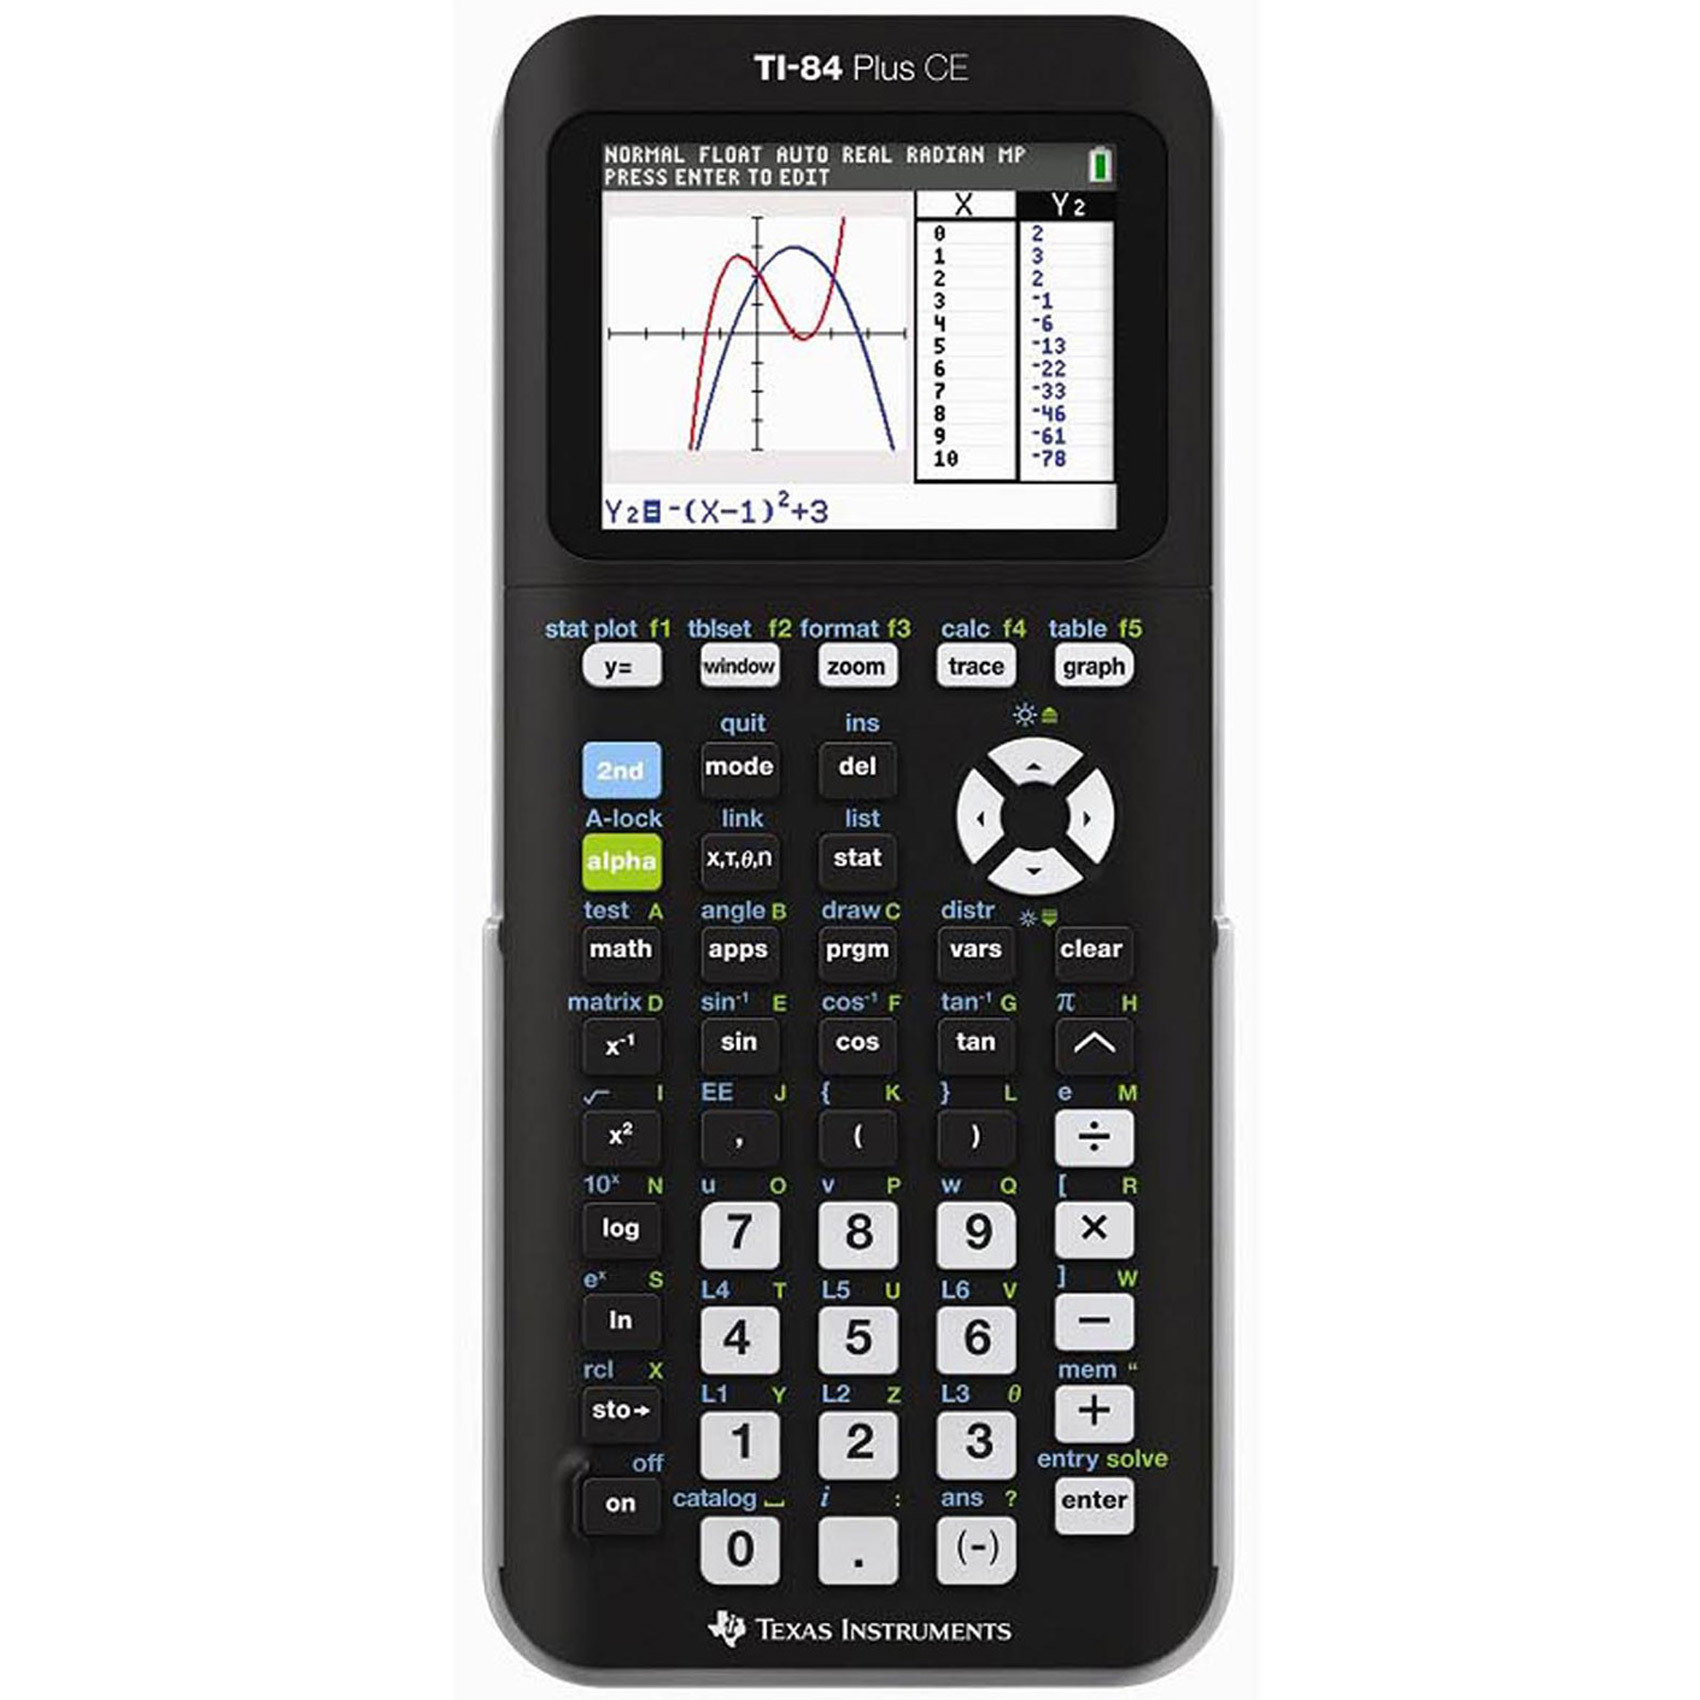 TEXAS TI-84 PLCE GRAPHIC